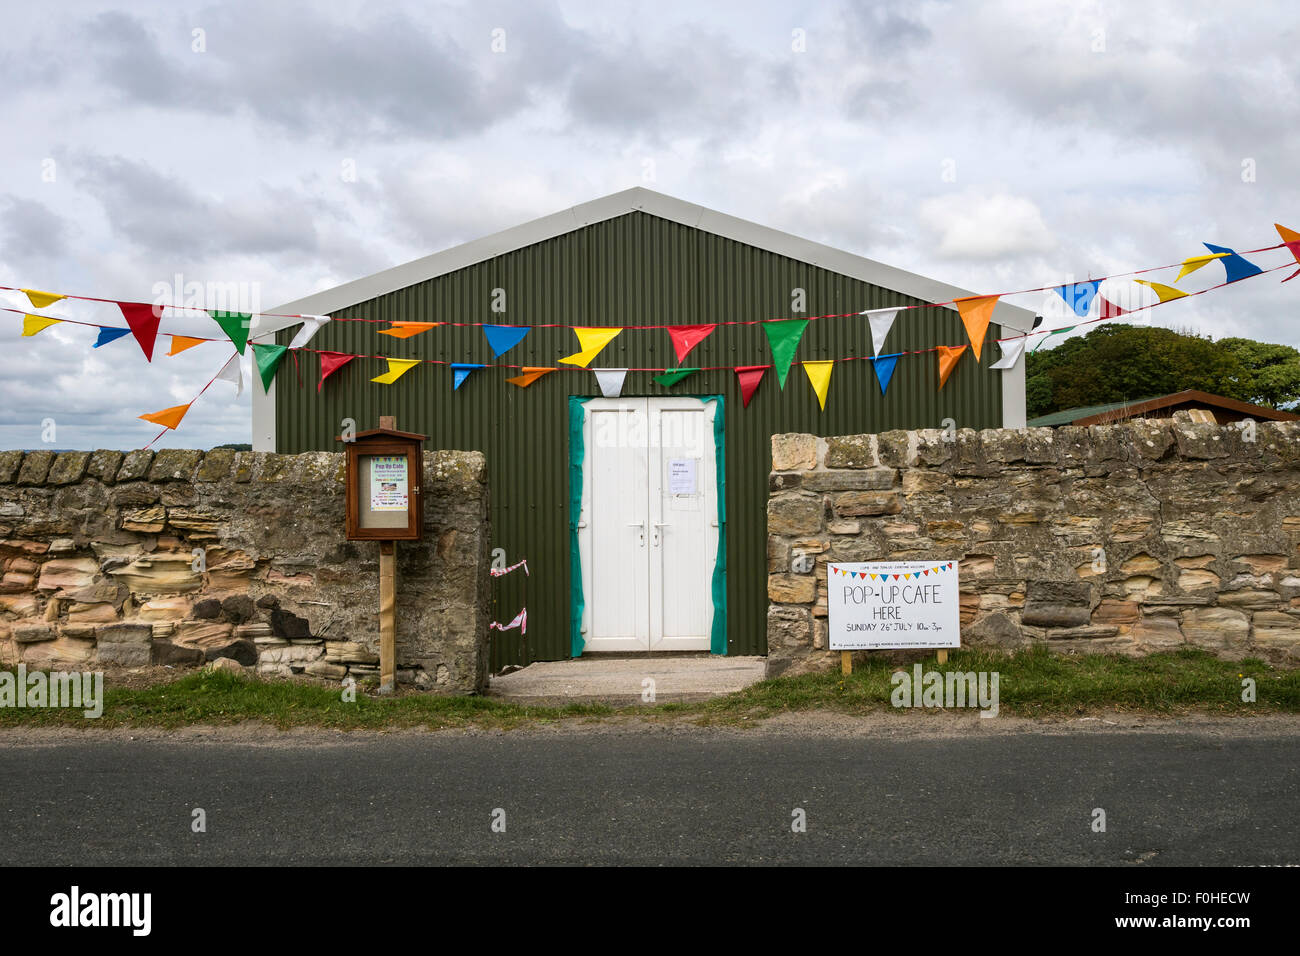 Village hall at Boulmer in Northumberland with sign advertising a pop-up cafe. - Stock Image